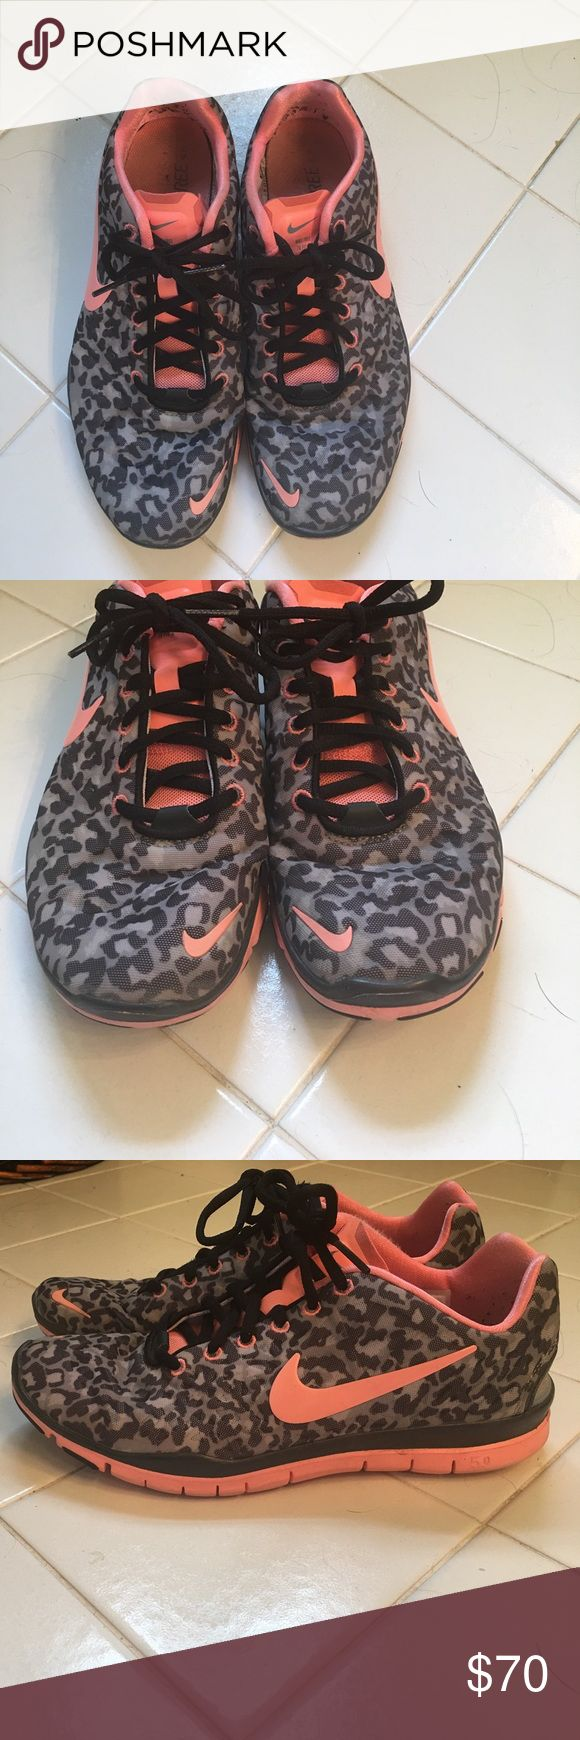 Rare Nike Leopard Free 5.0 Nike leopard print 5.0, perfect for the gym or casual day! Nike Shoes Sneakers